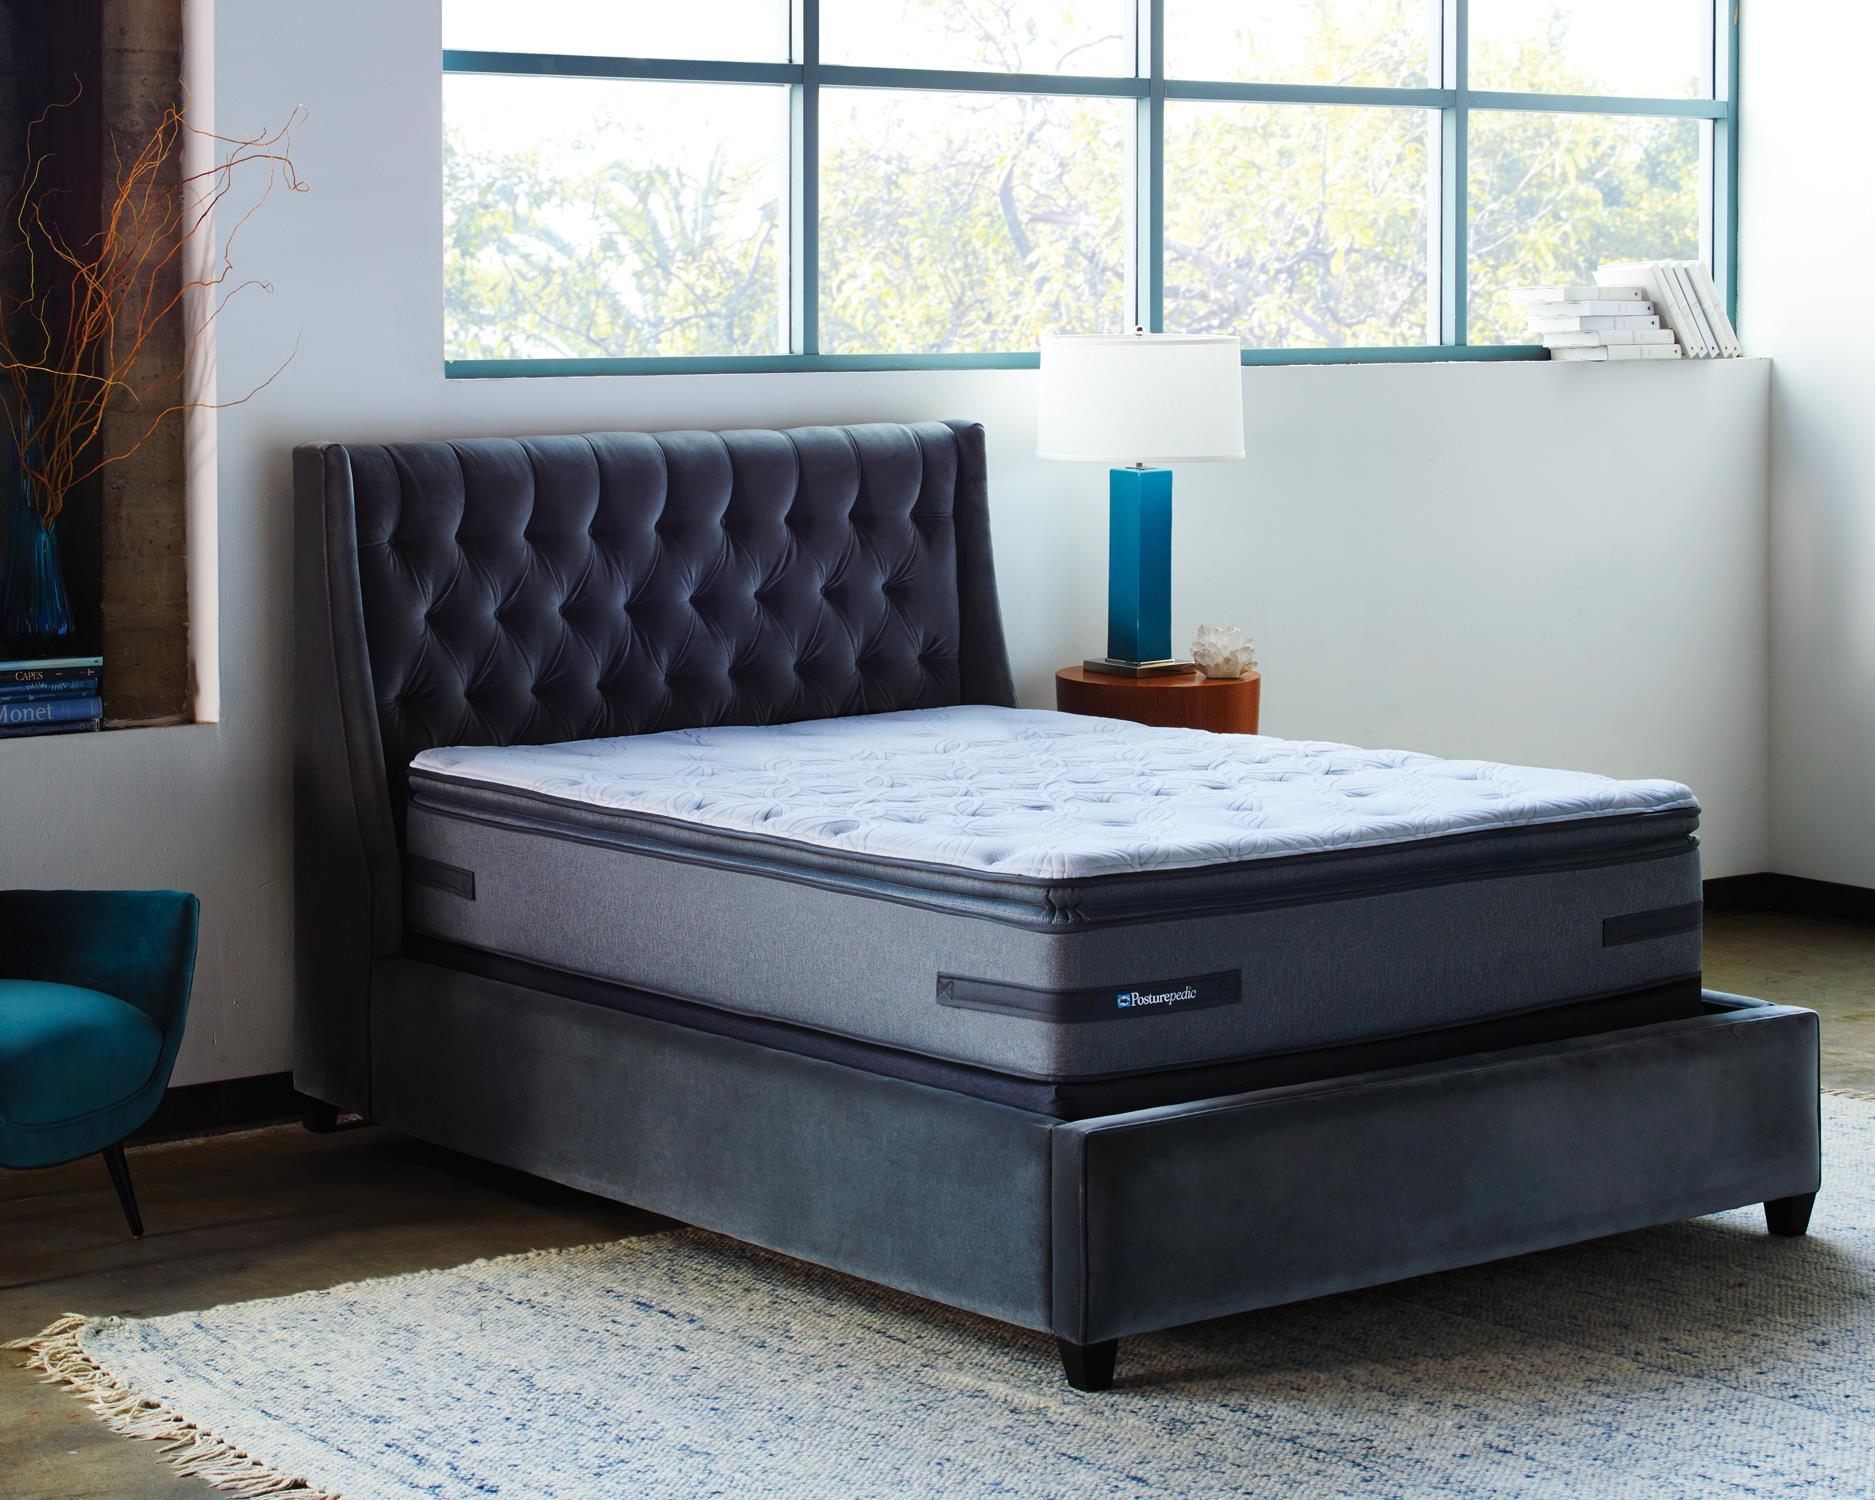 Sealy Posturpedic Ariel Sands Full CF EPT Mattress Set - Item Number: CushionFirmEPT-F+SSfoundation-F